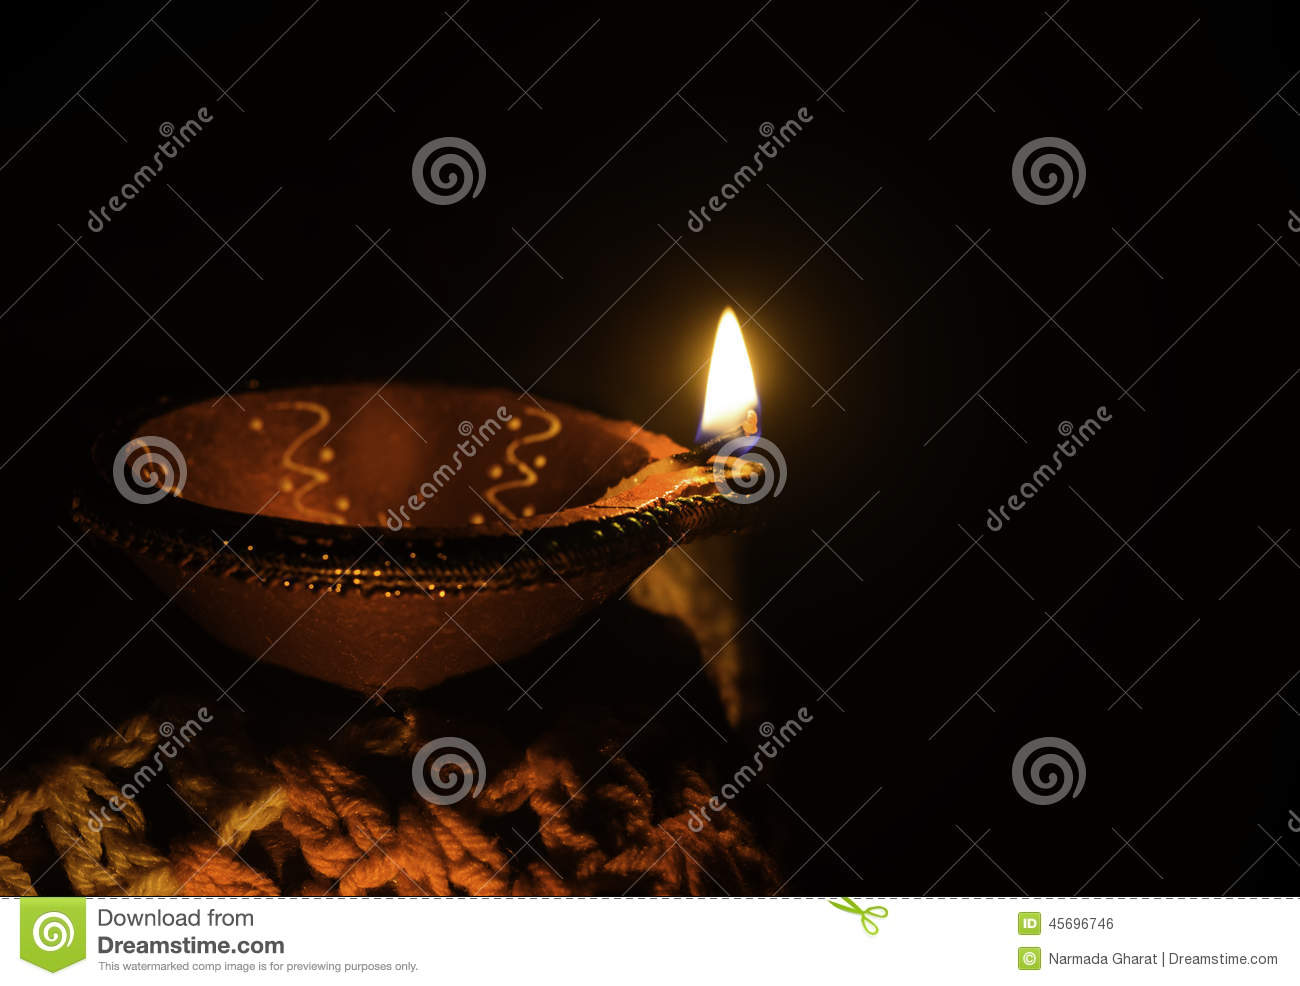 Clay oil lamp use in diwali festival with poster space